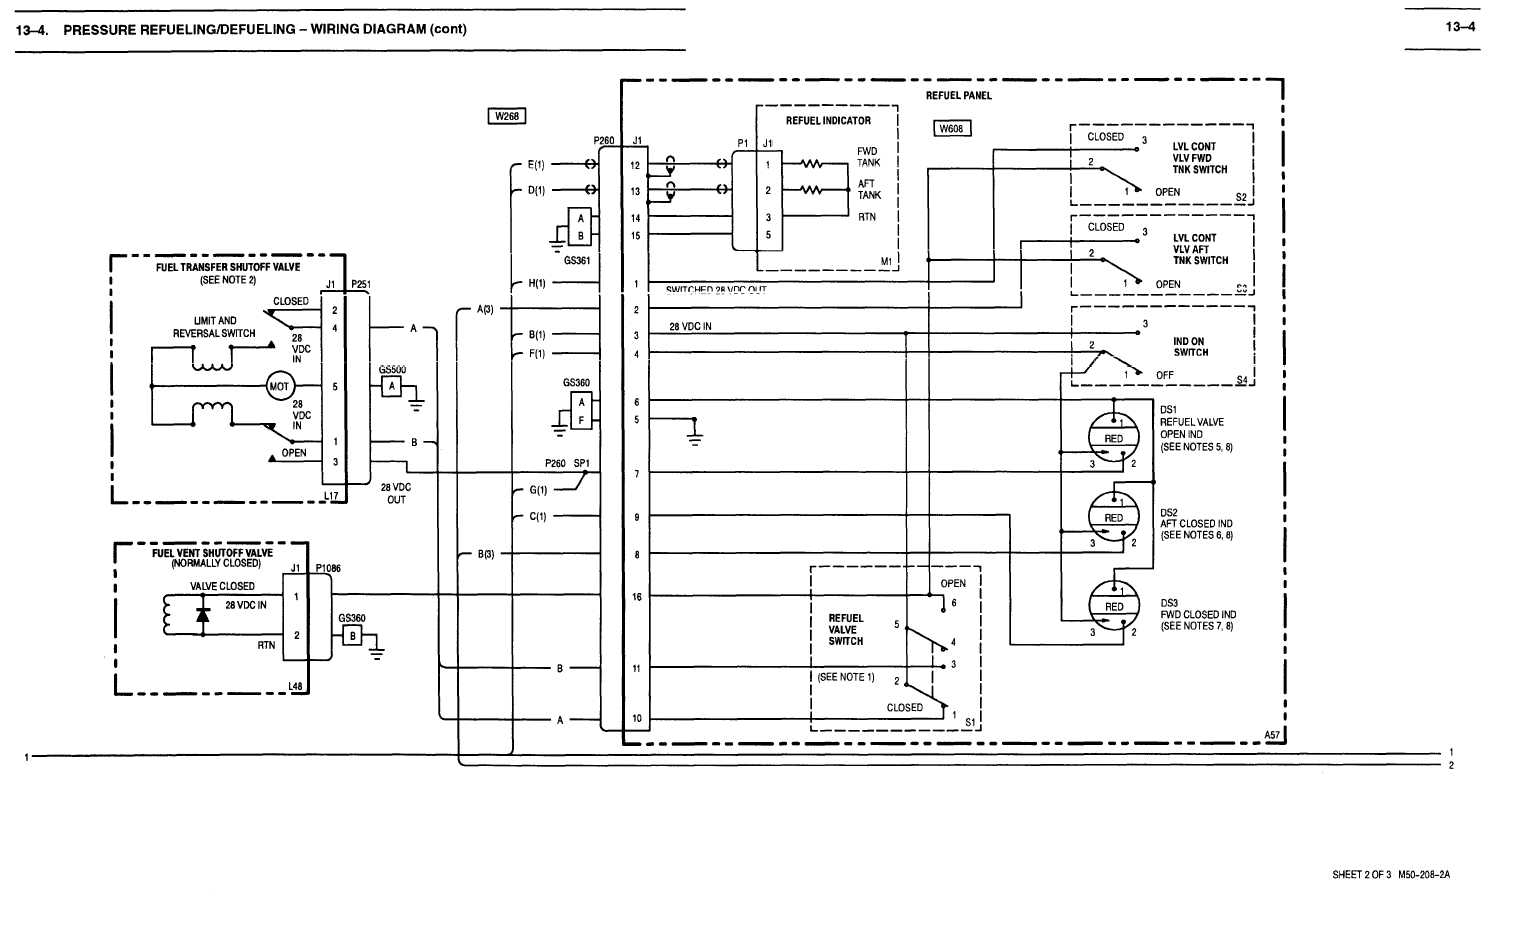 13 4 Pressure Refueling Defueling Wiring Diagram Cont